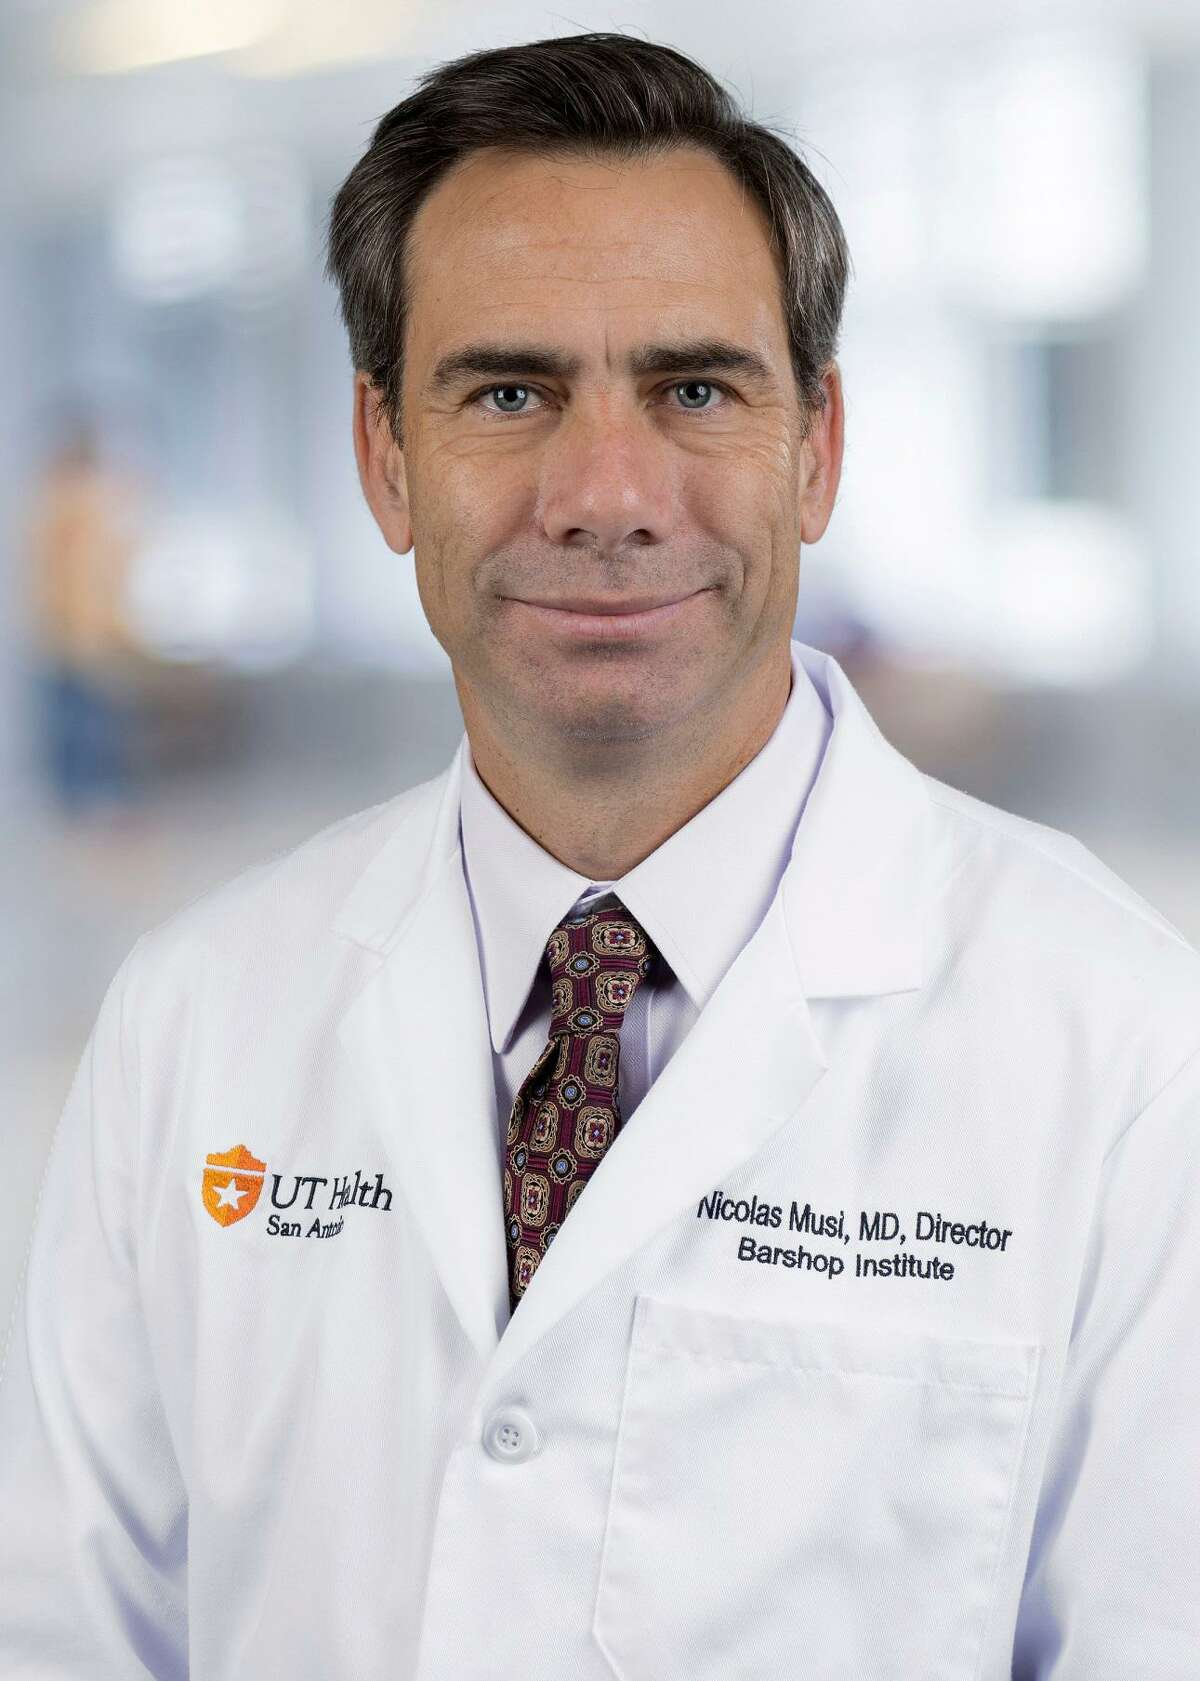 Dr. Nicolas Musi is director of the Barshop Institute for Longevity and Aging Studies, part of UT Health San Antonio. He's a co-author of a study published last month that could open a new pathway to fighting Alzheimer's disease.